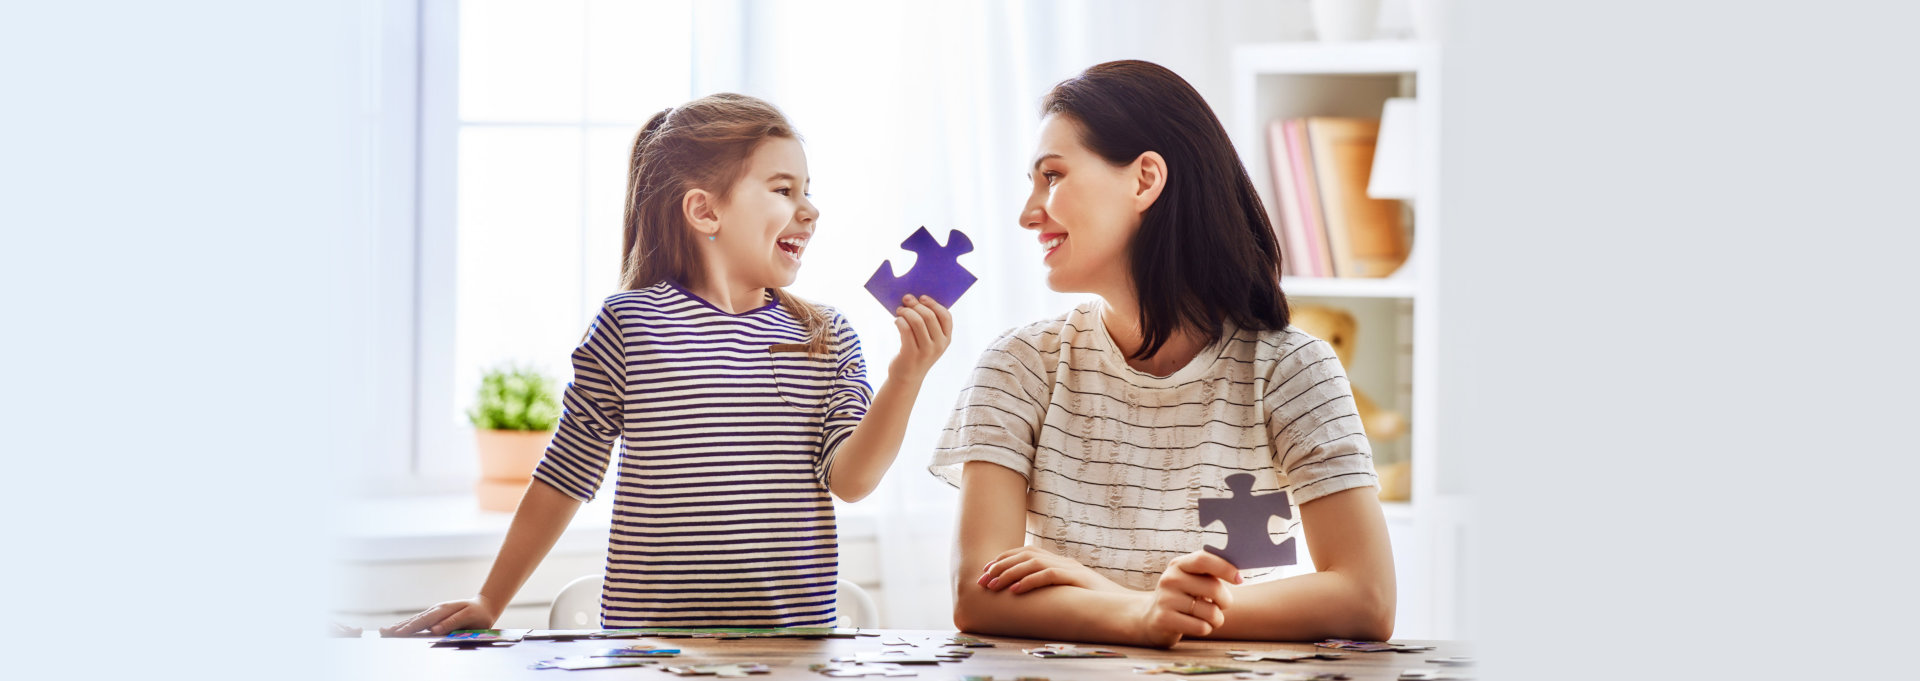 woman and child playing puzzle